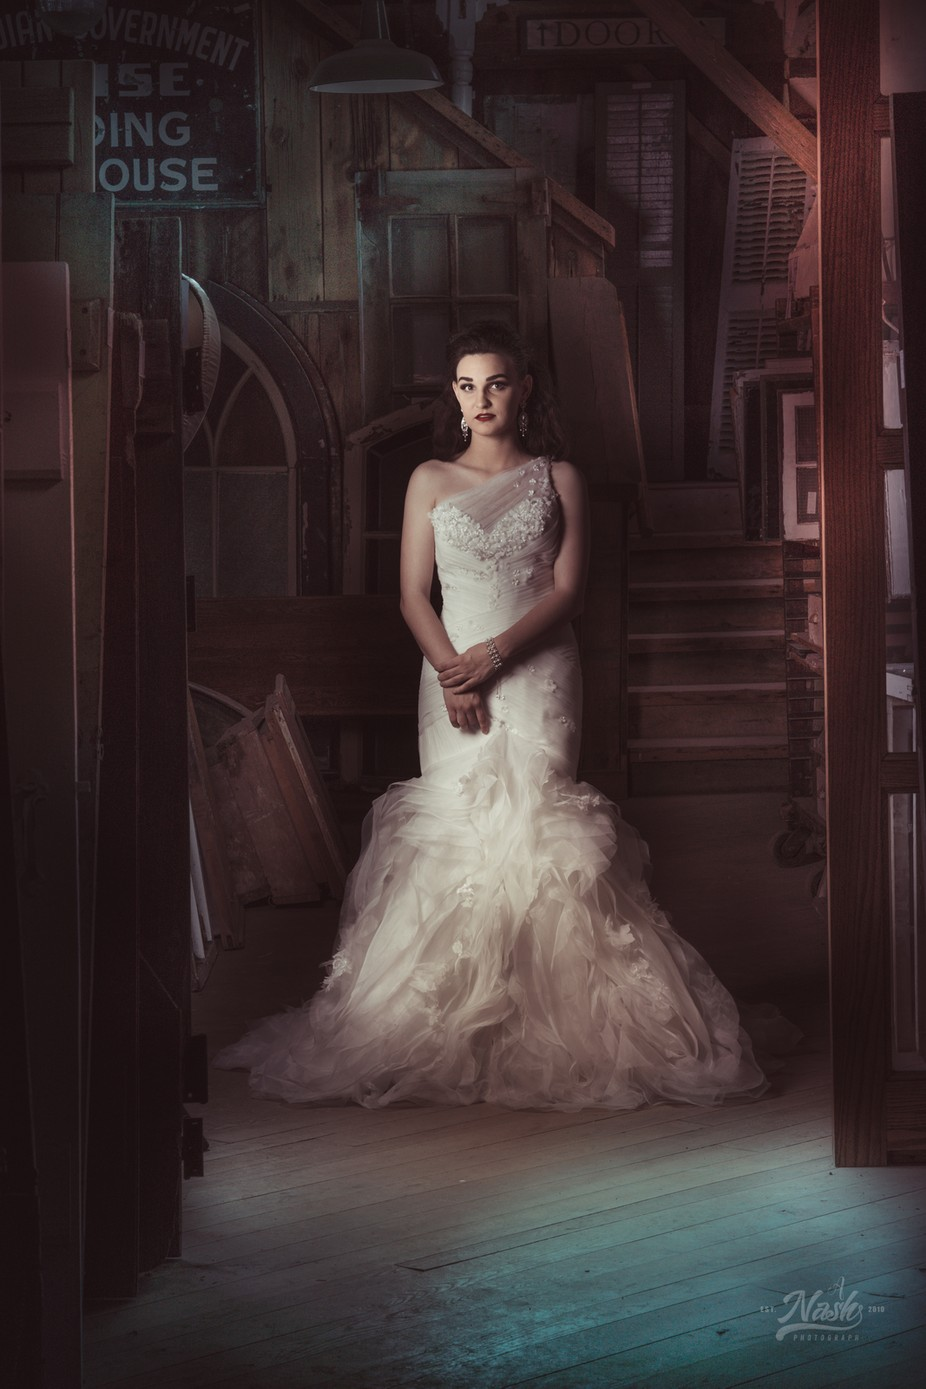 Timeless by AmyNash - Weddings And Fashion Photo Contest